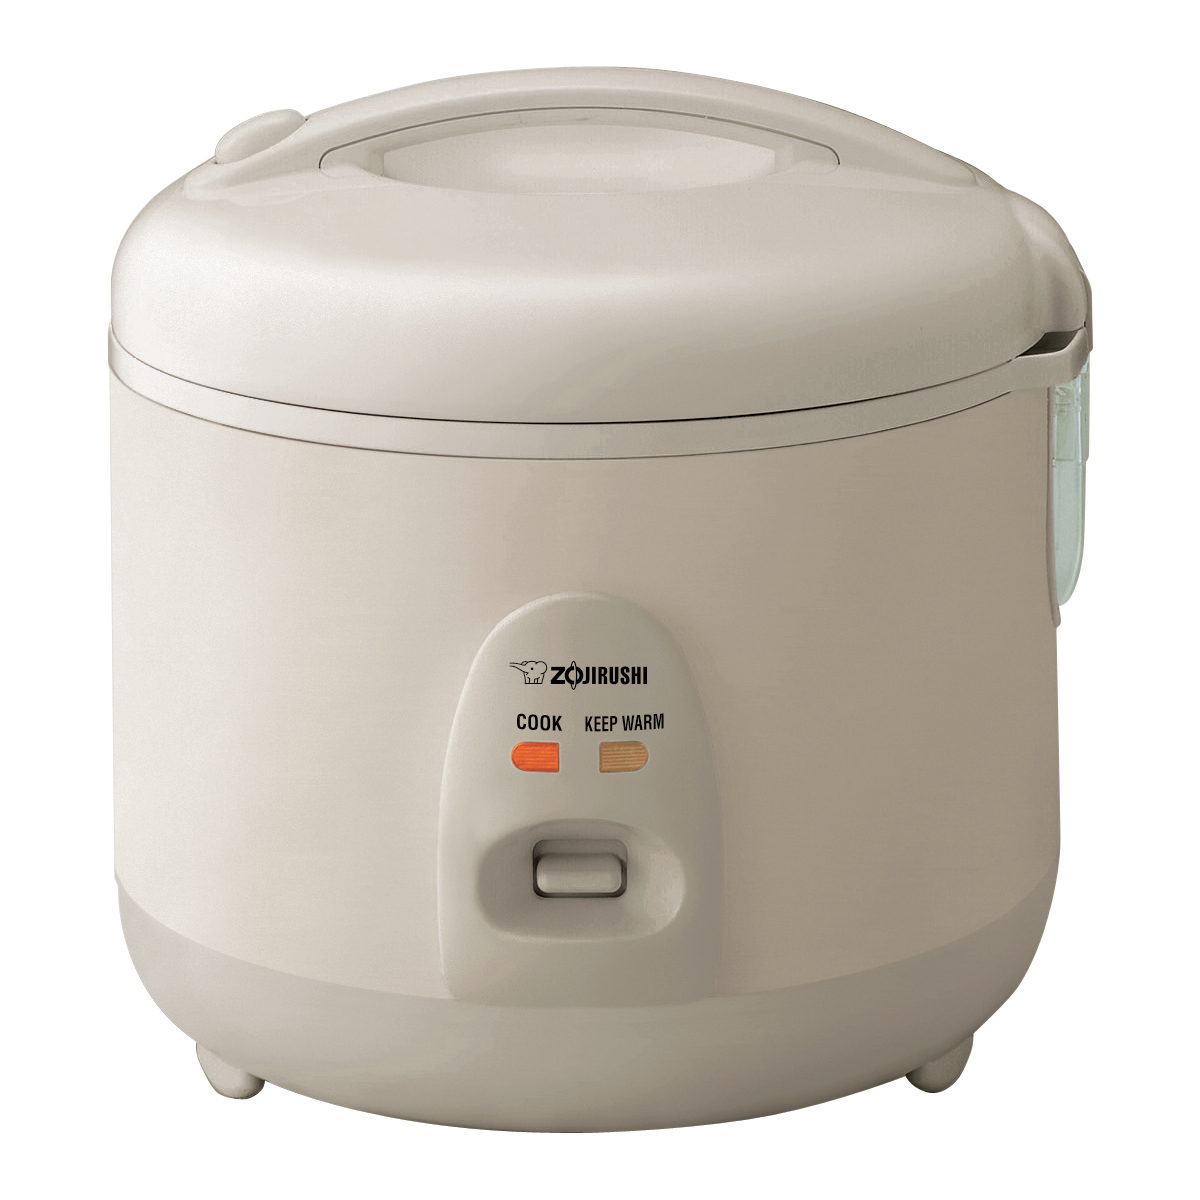 Zojirushi Gold 5.5 Cup Automatic Rice Cooker